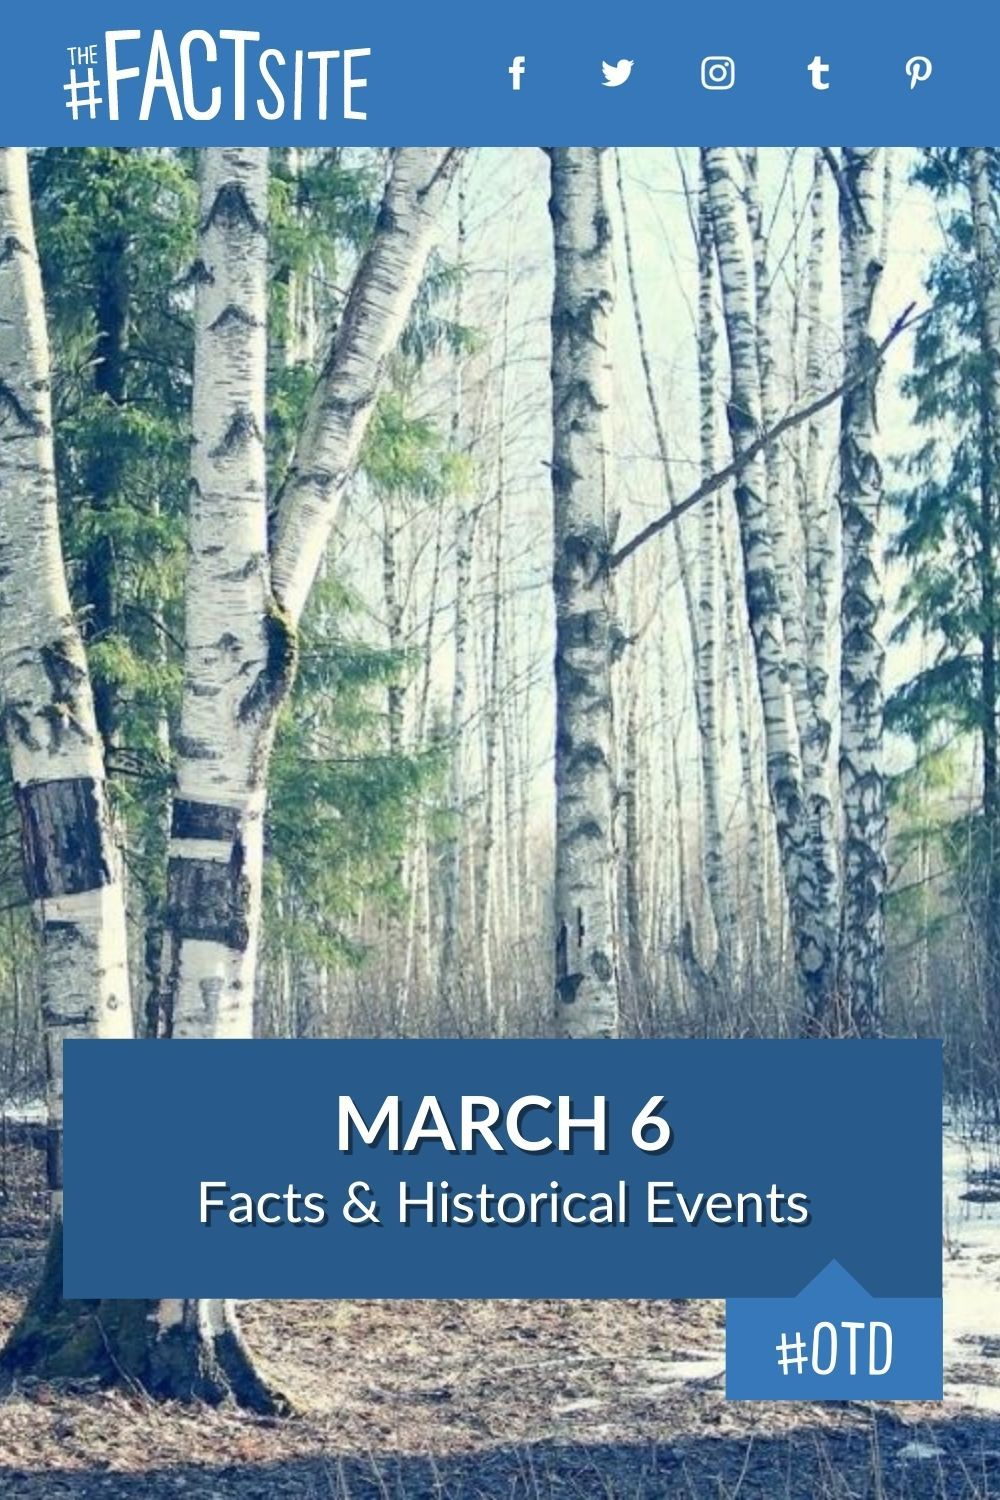 Facts & Historic Events That Happened on March 6